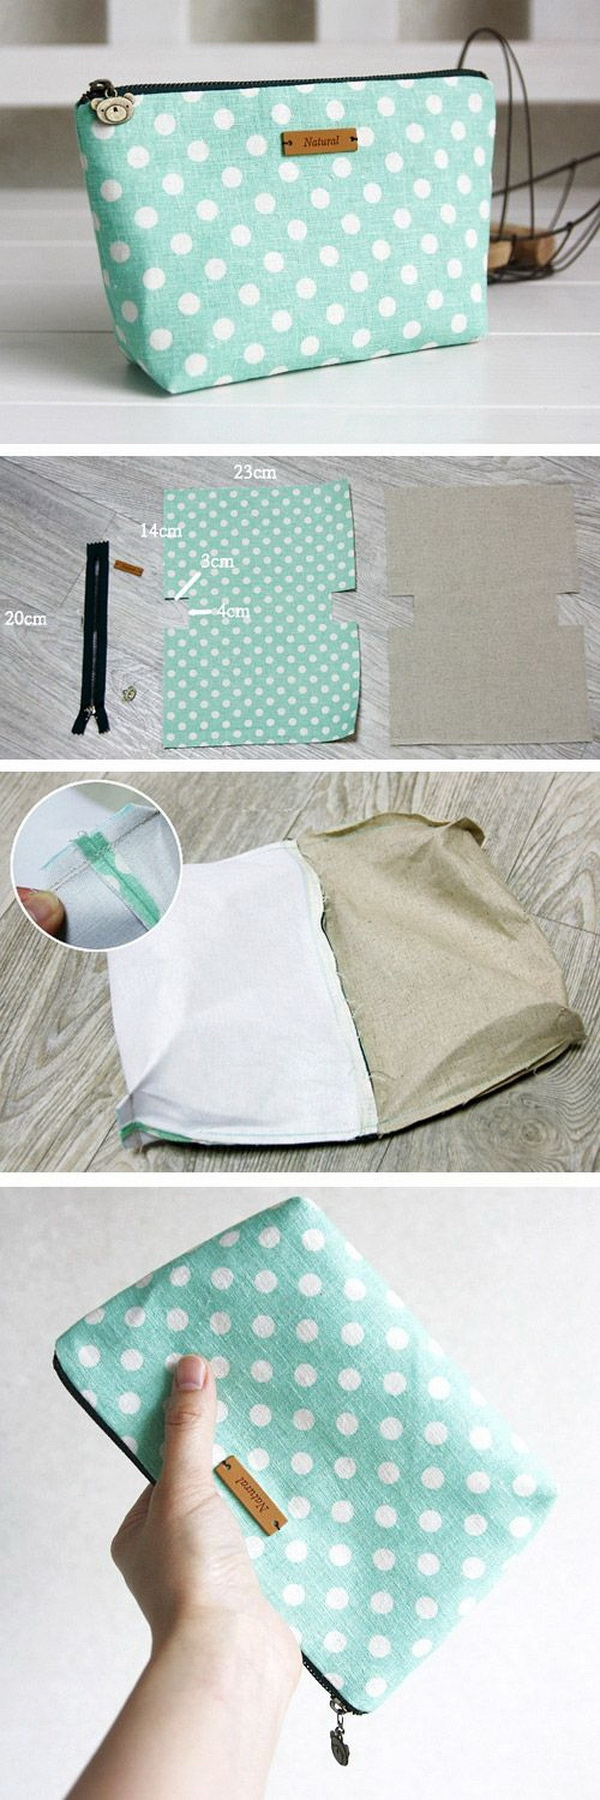 DIY Natural Linen And Cotton Zipper Cosmetic Bag